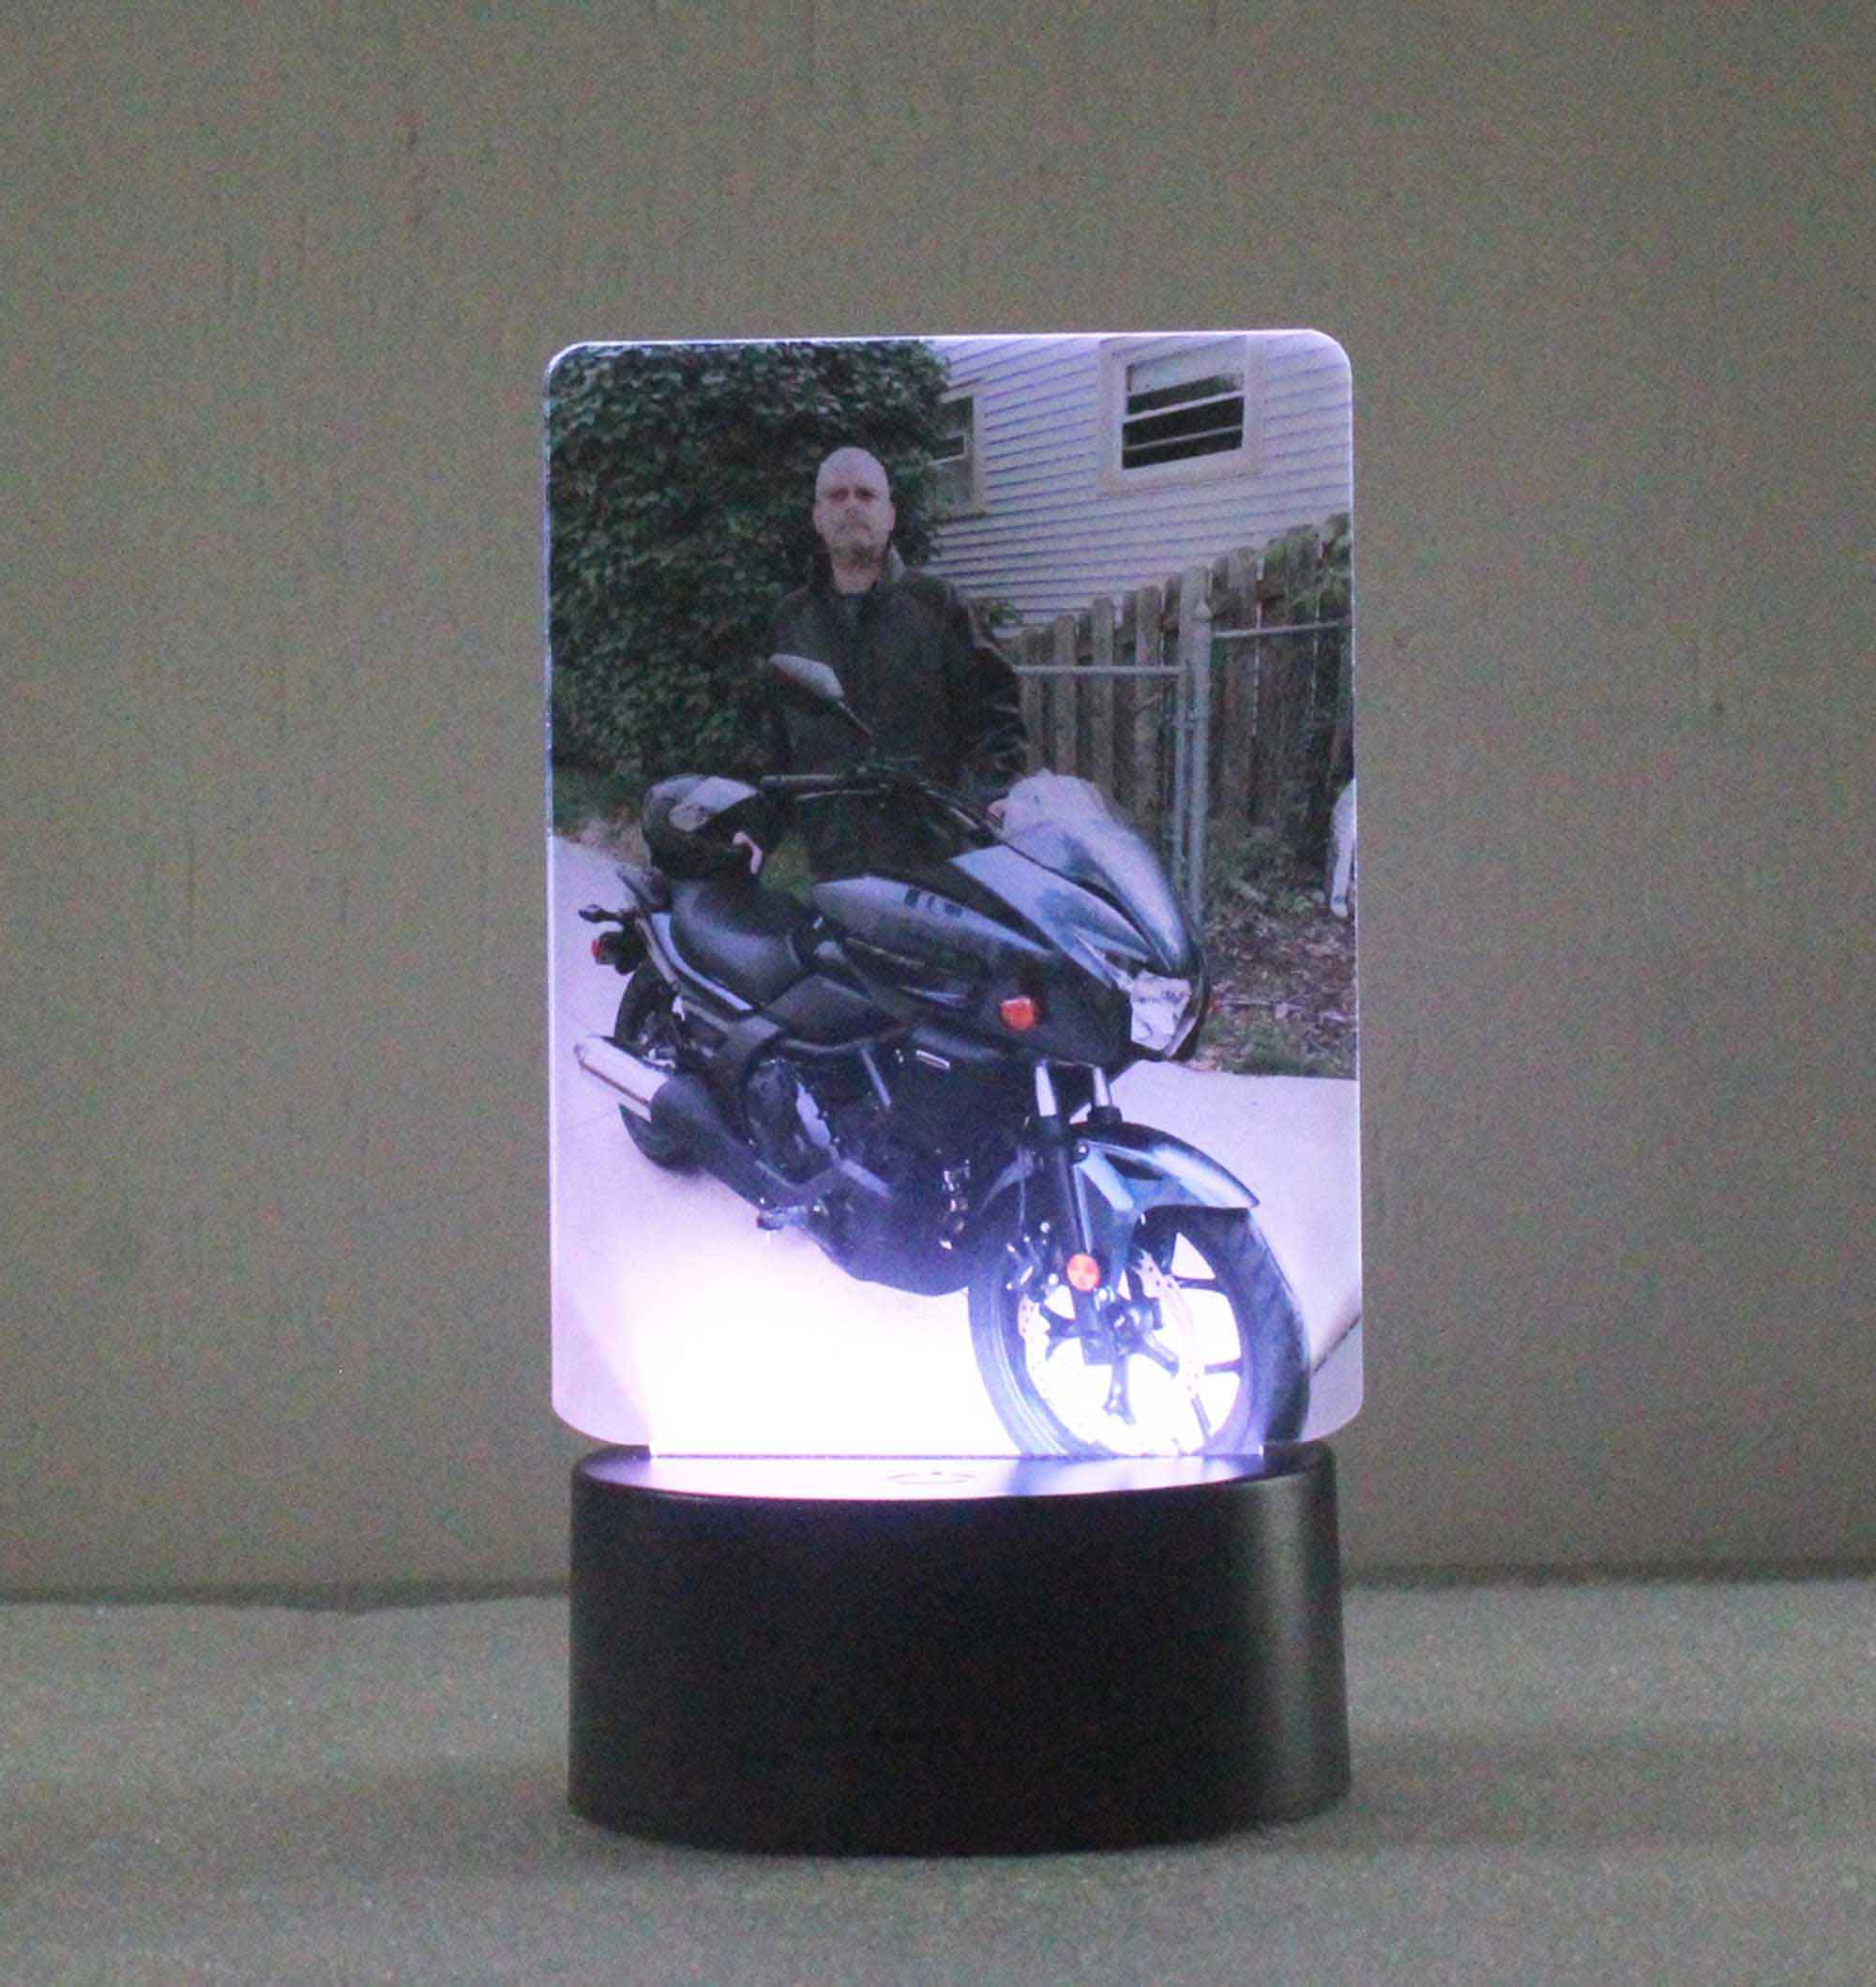 Photo Night Light, UV Printed Acrylic - Multi-color changing USB/110V/Battery